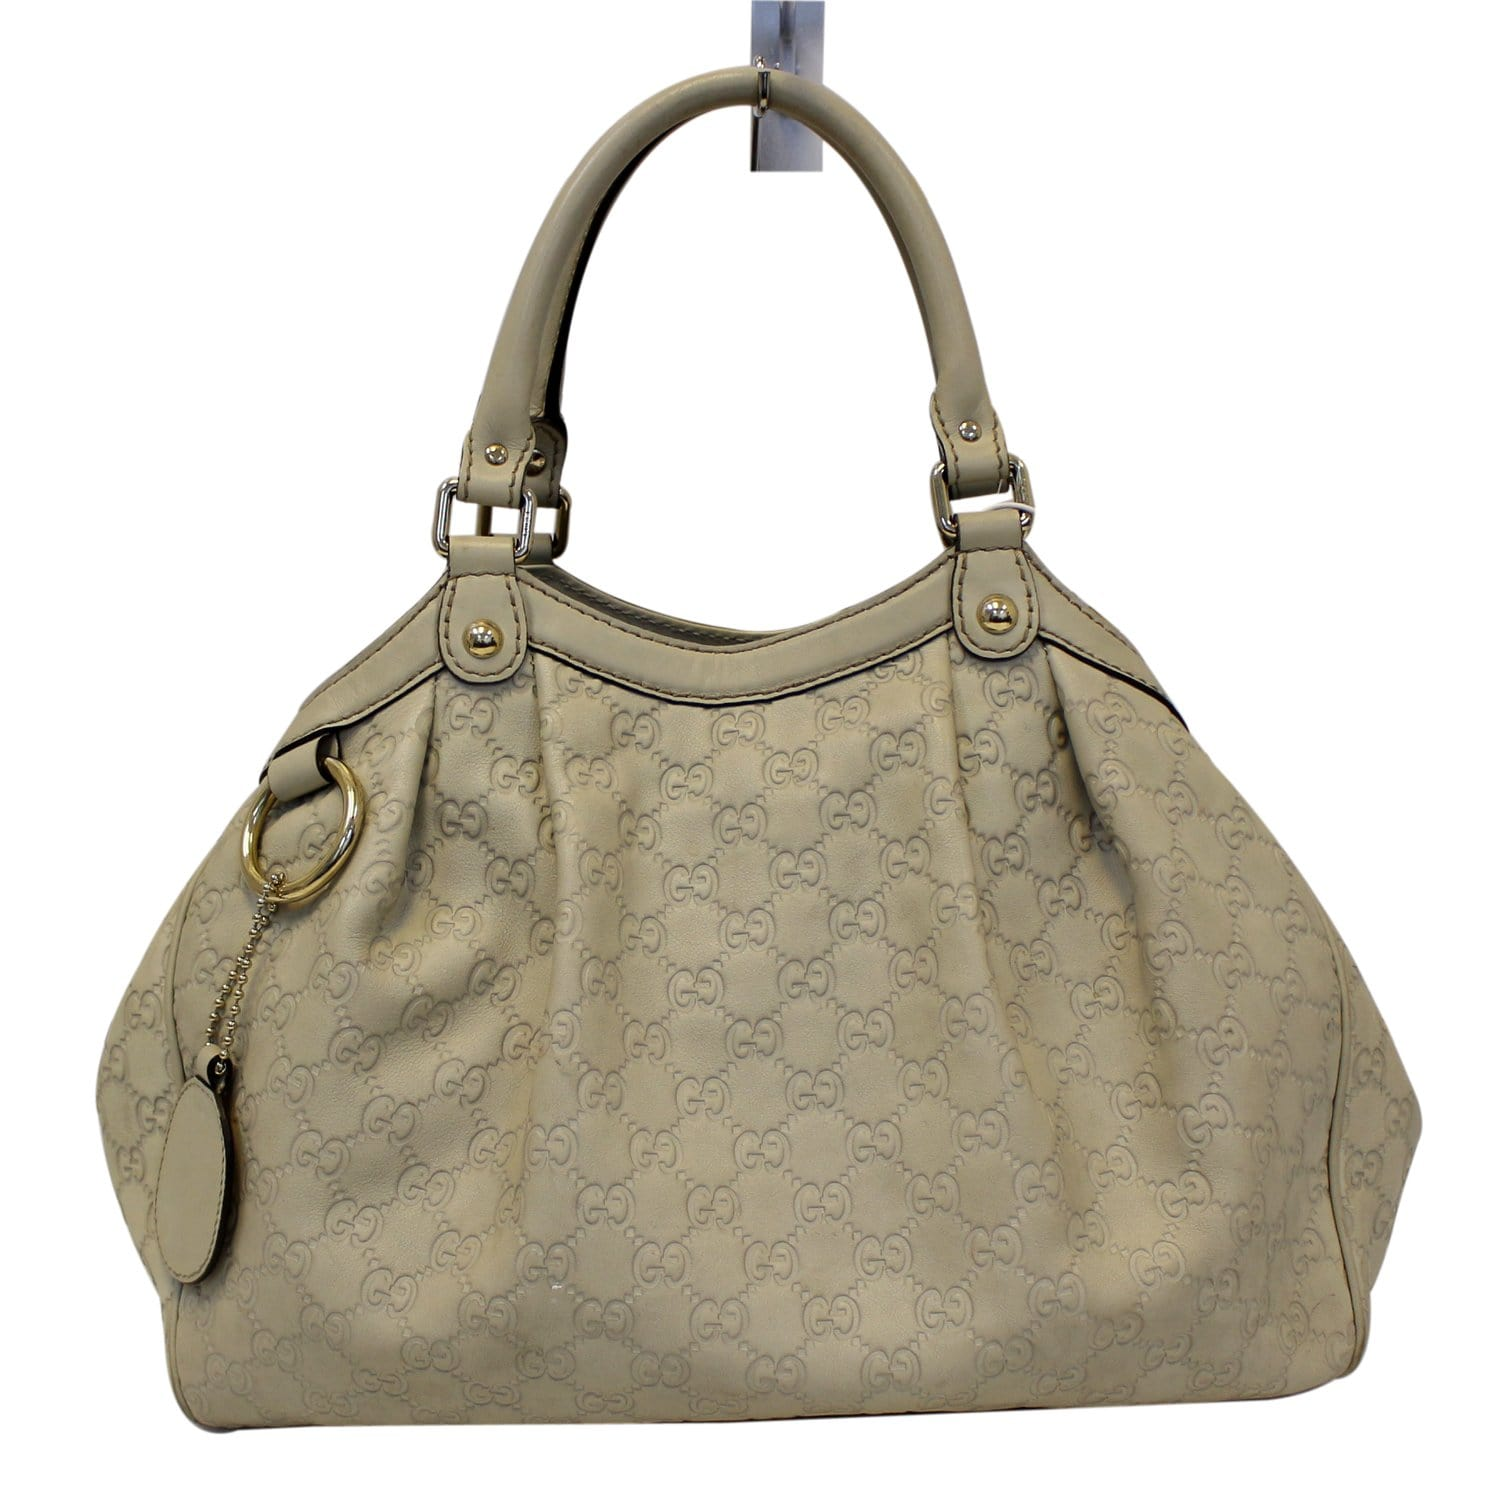 e02f393bf895 Gucci Sukey GG Guccissima Leather Medium Tote Bag